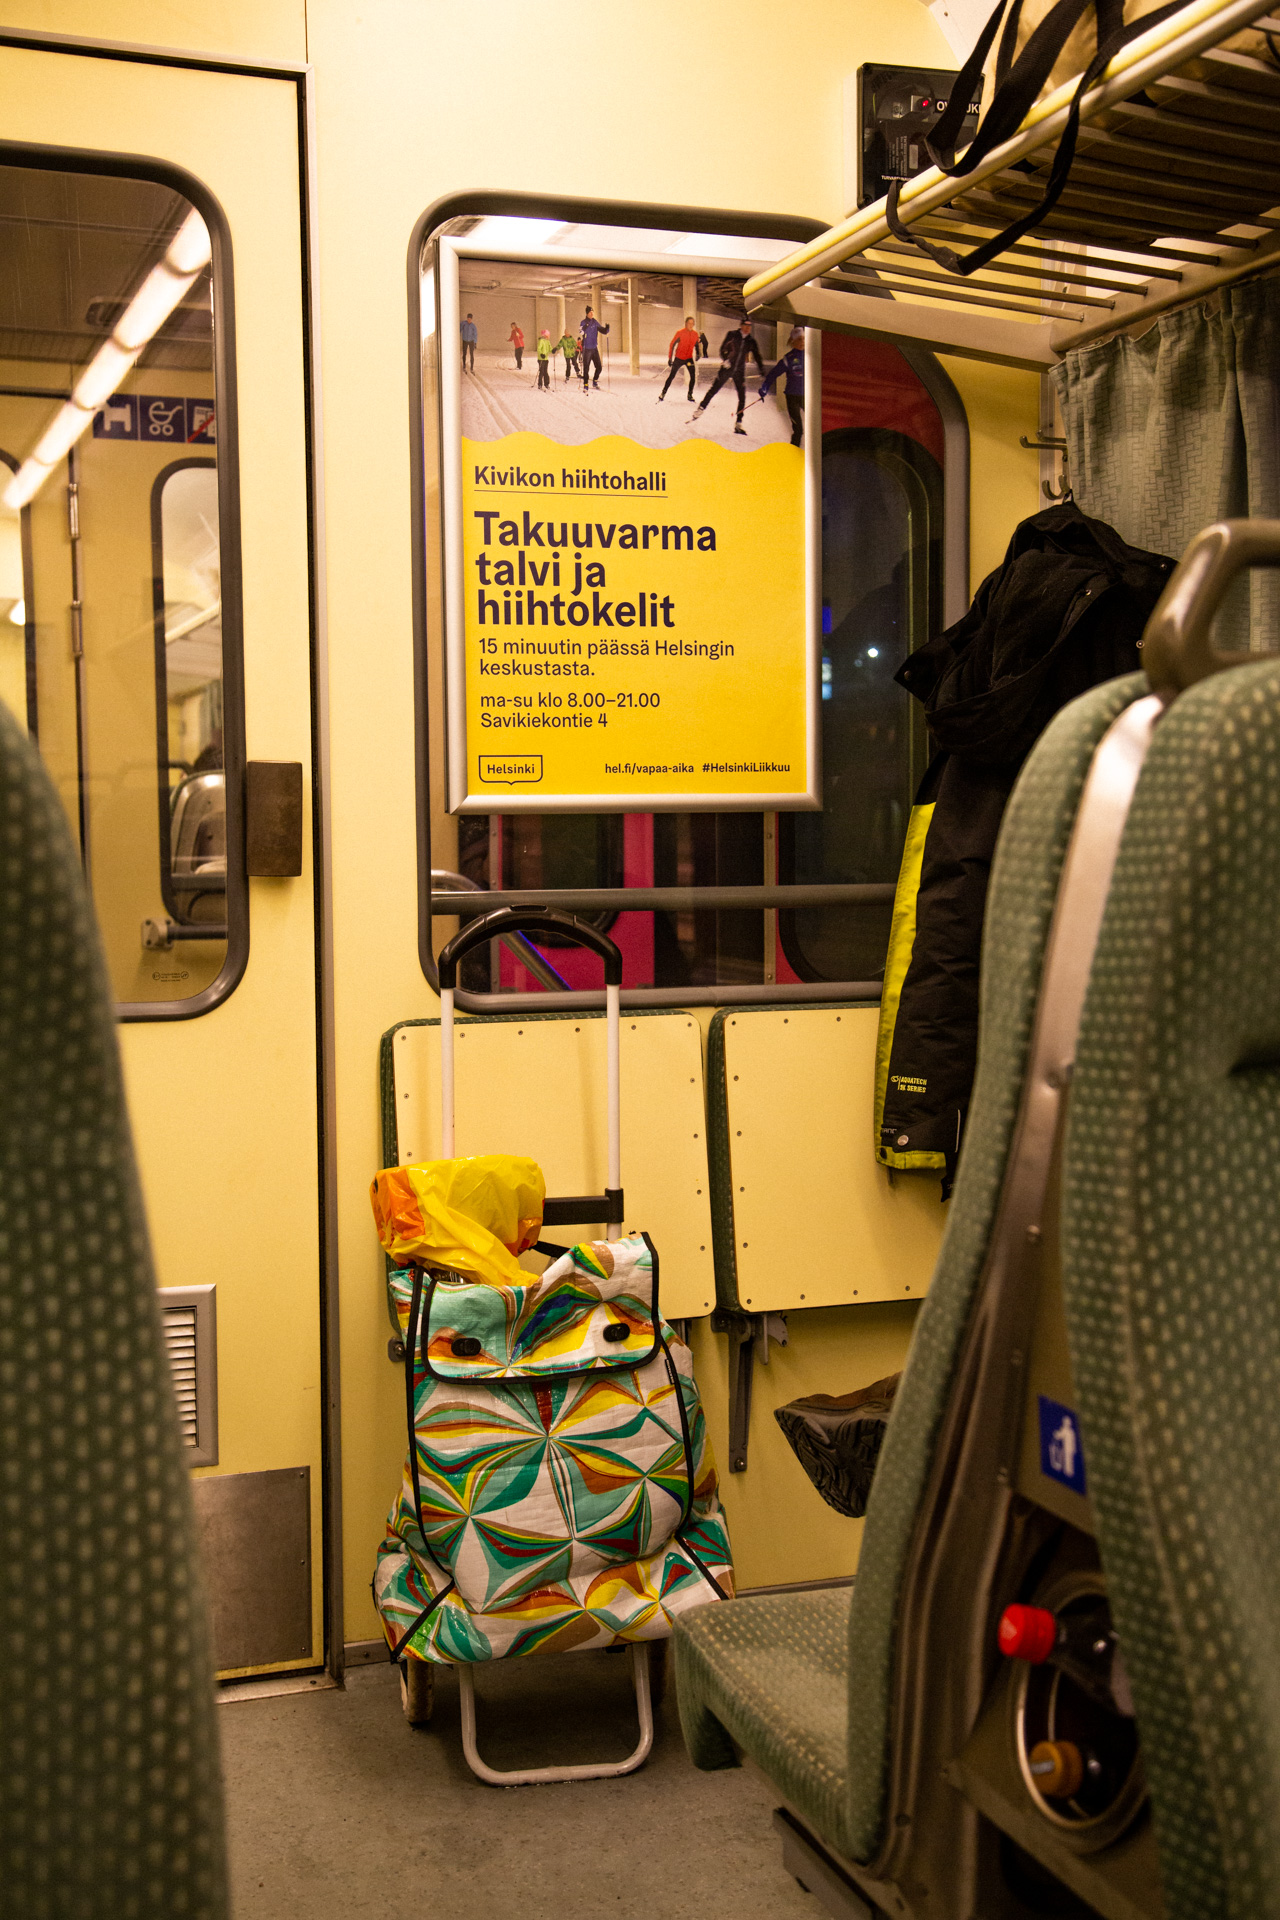 An advertisement on guaranteed winter in an indoor skiing hall on a commuter train.